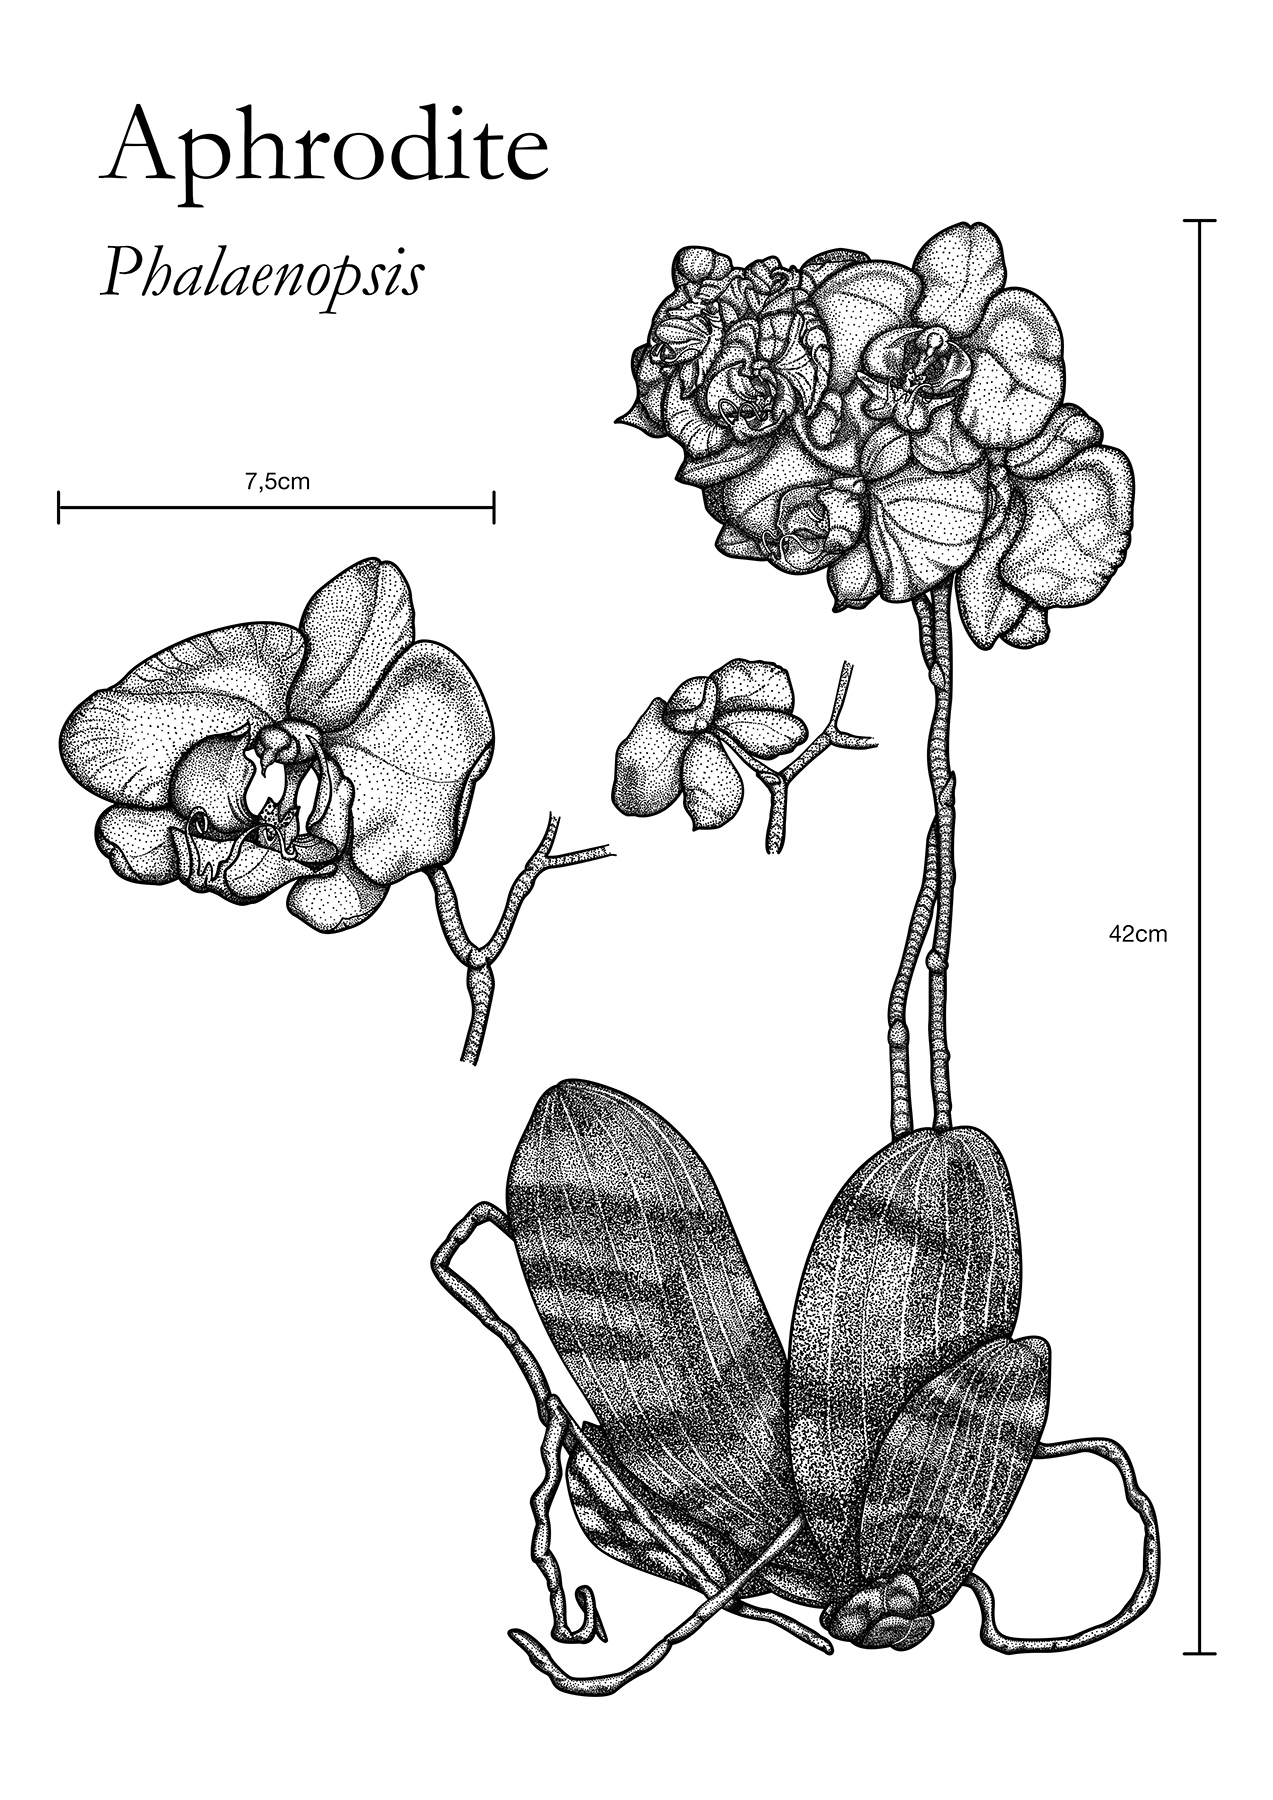 The Aphrodite is a flower known as moth orchids abbreviated Phal in the horticultural trade is an orchid genus and is one of the most popular orchids in the trade through the development of many artificial hybrids It is native to southern China Taiwan the